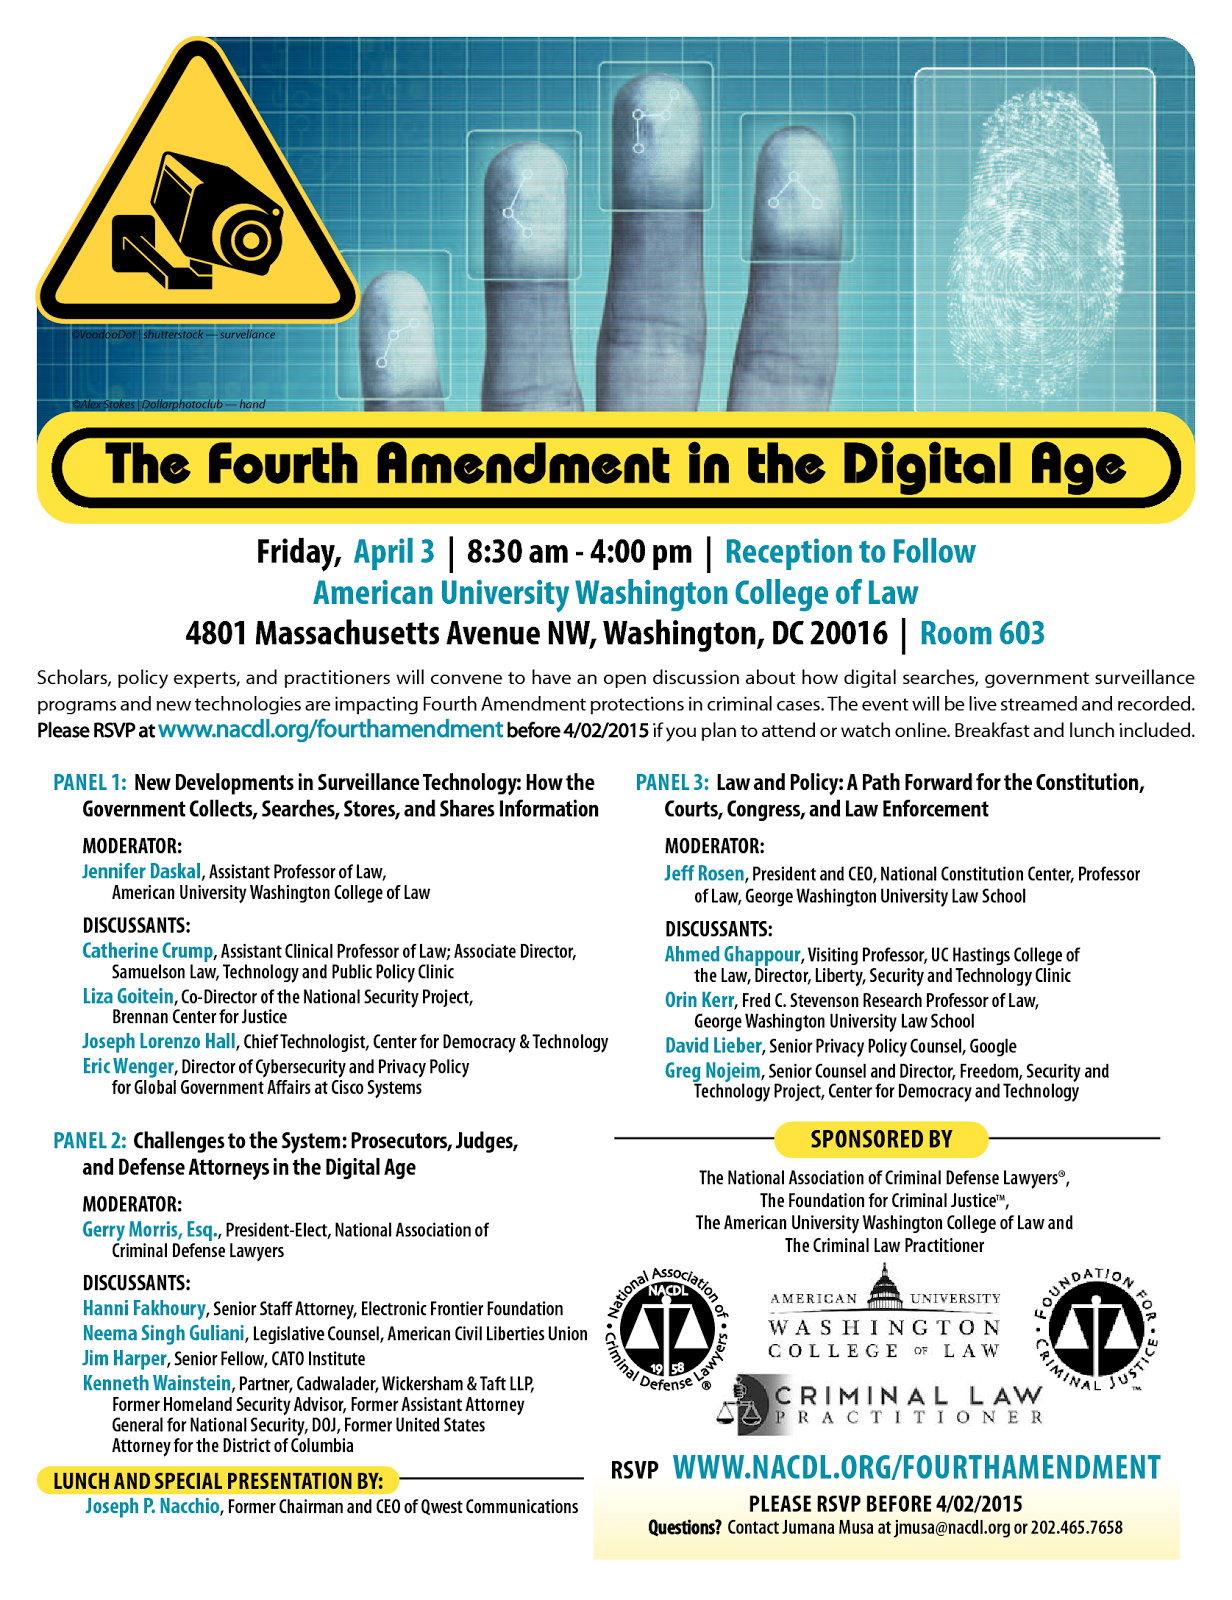 Friday, April 3, 2015: The Fourth Amendment in the Digital Age